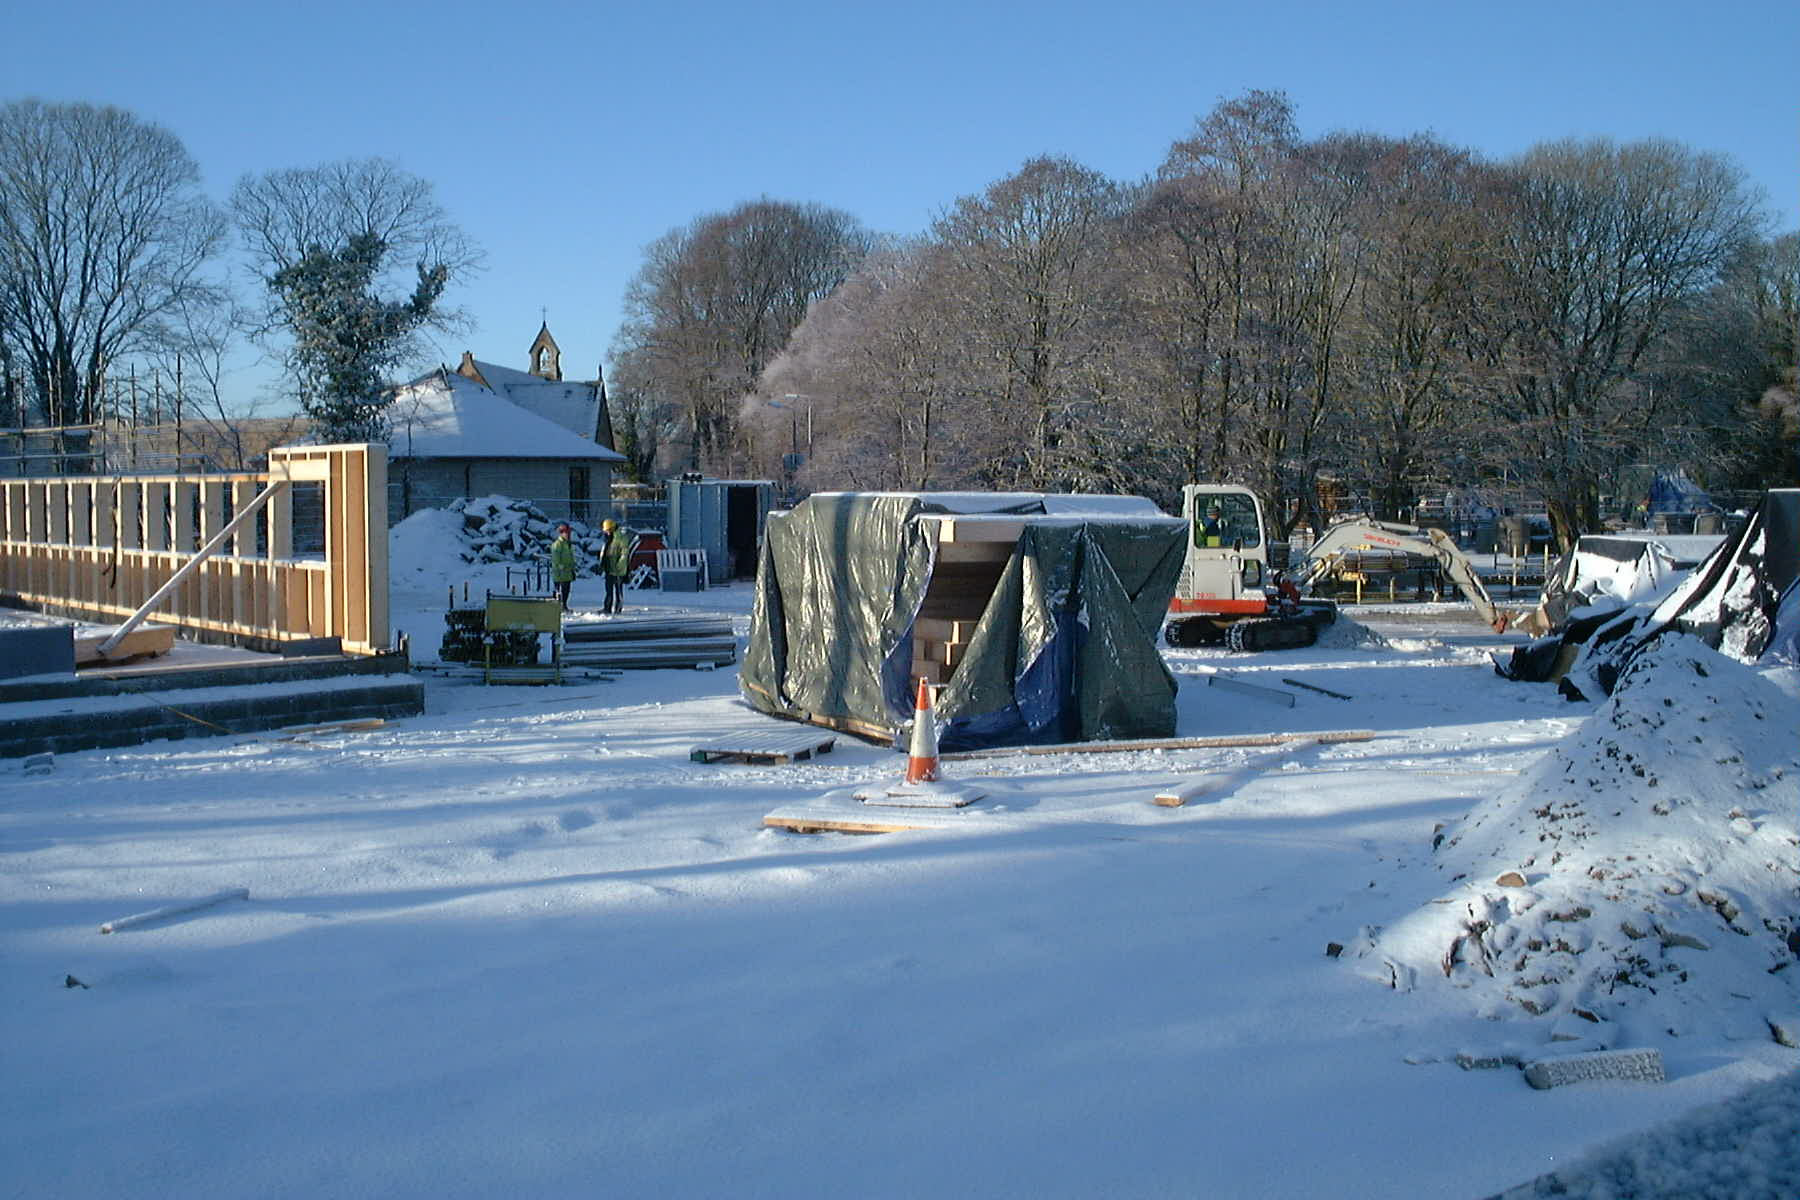 New Burns Museum, Ayr Jan 5th 2010 by Reg Tait